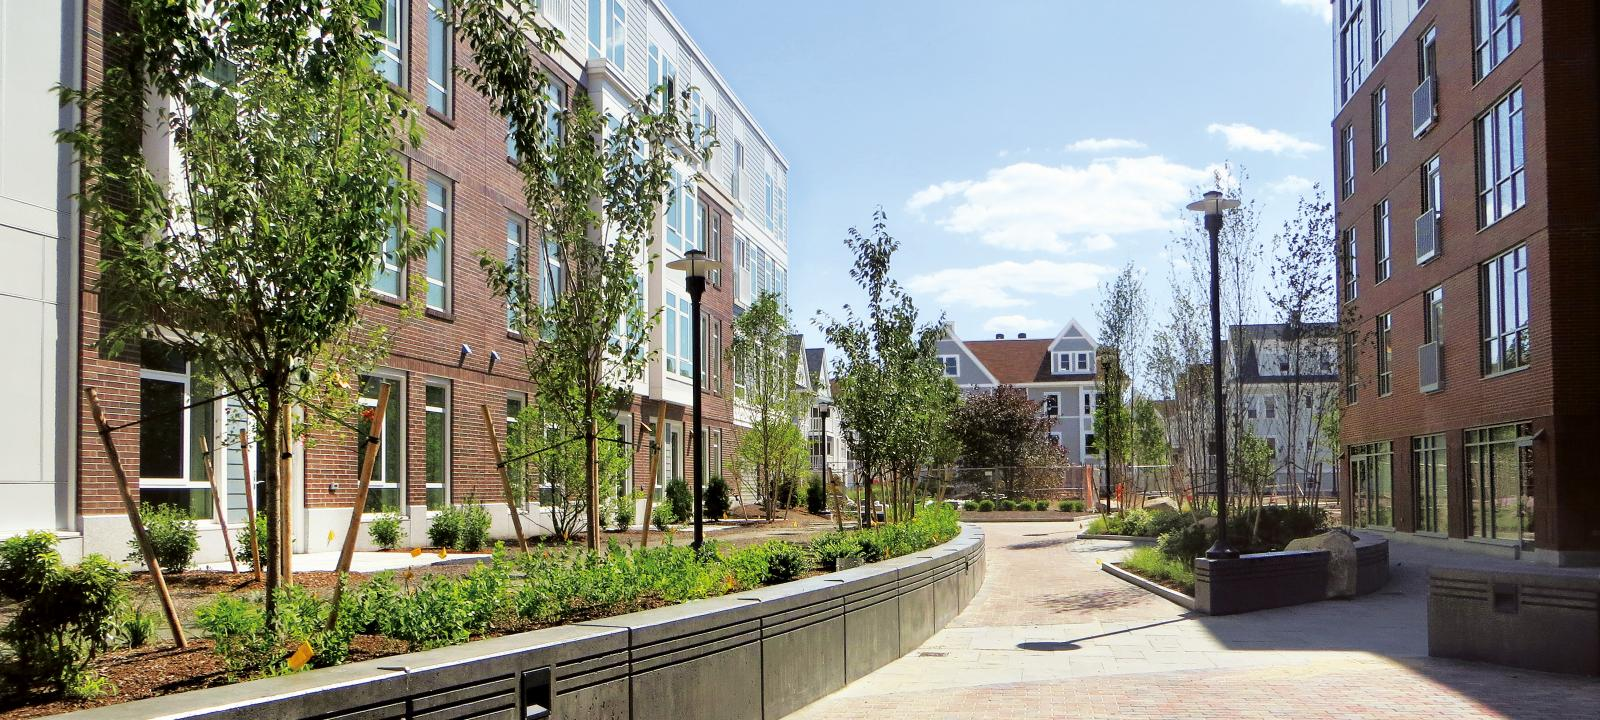 Courtyard with plant beds and small trees surrounded by residential buildings